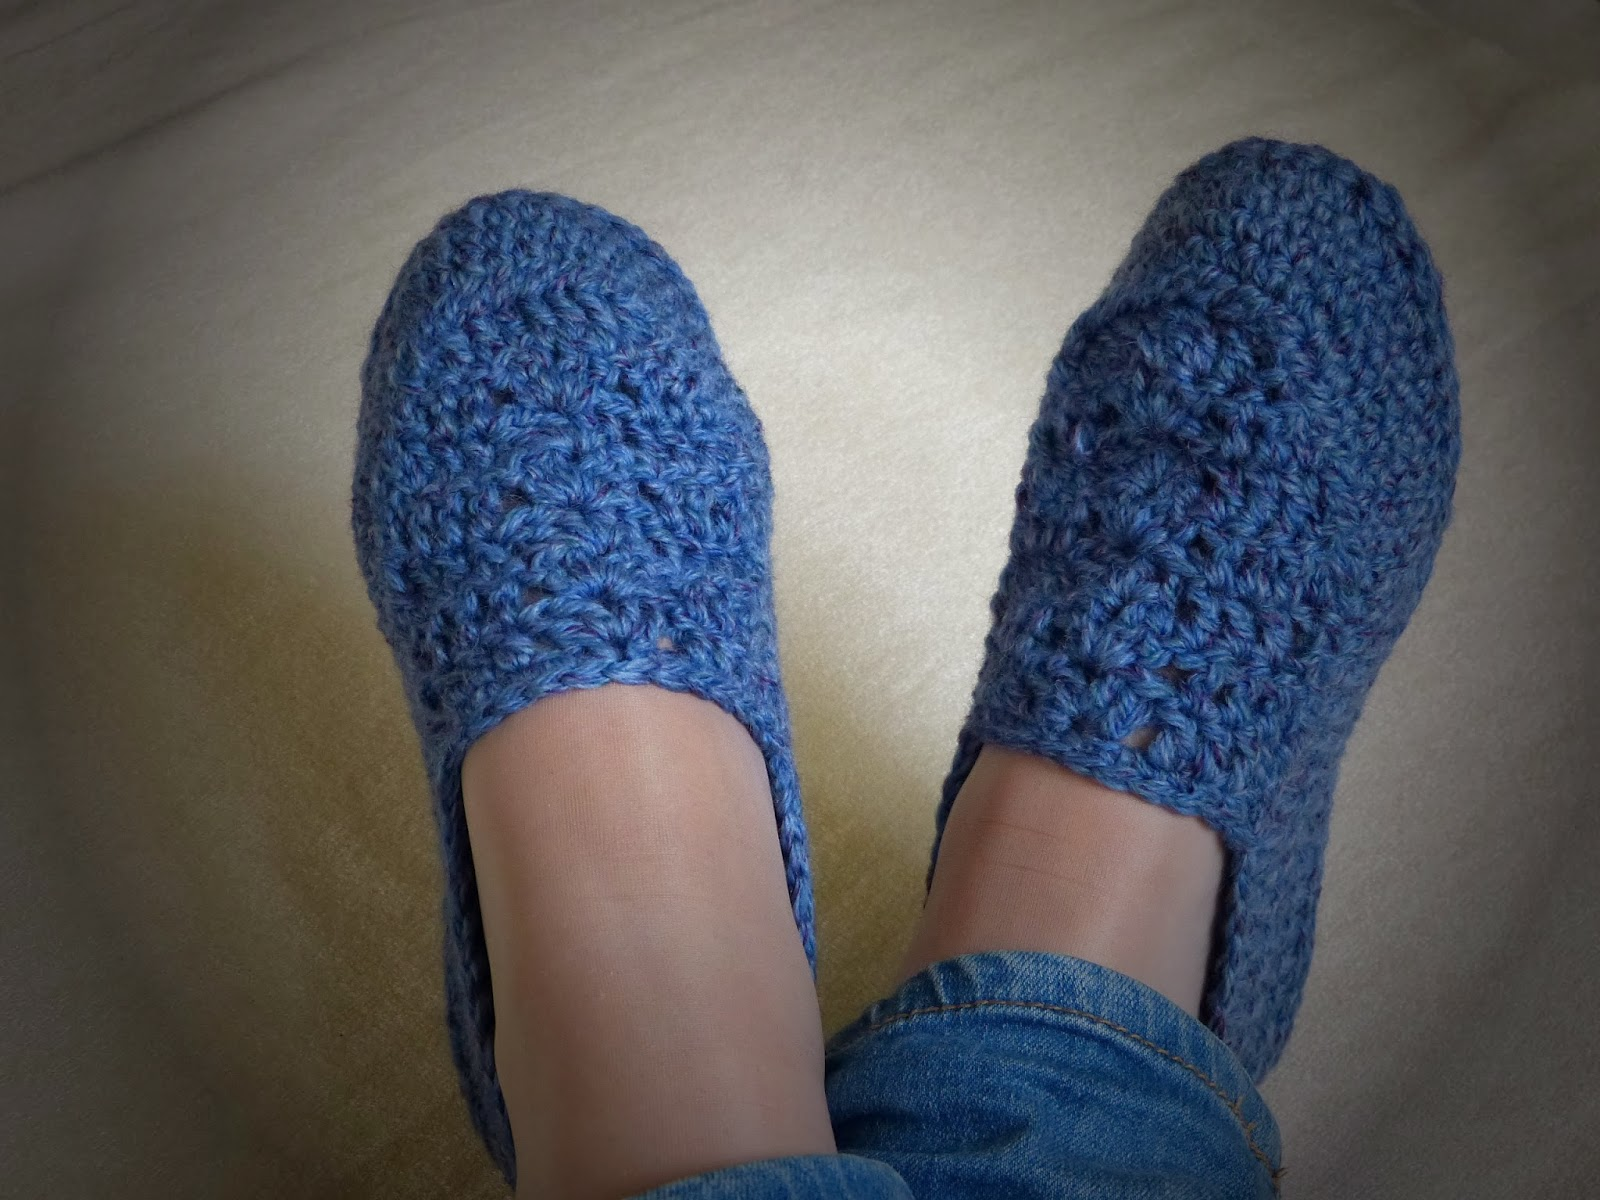 szydełkowe kapcie, crochet shoes, crochet house shoes, crochet boy slippers,